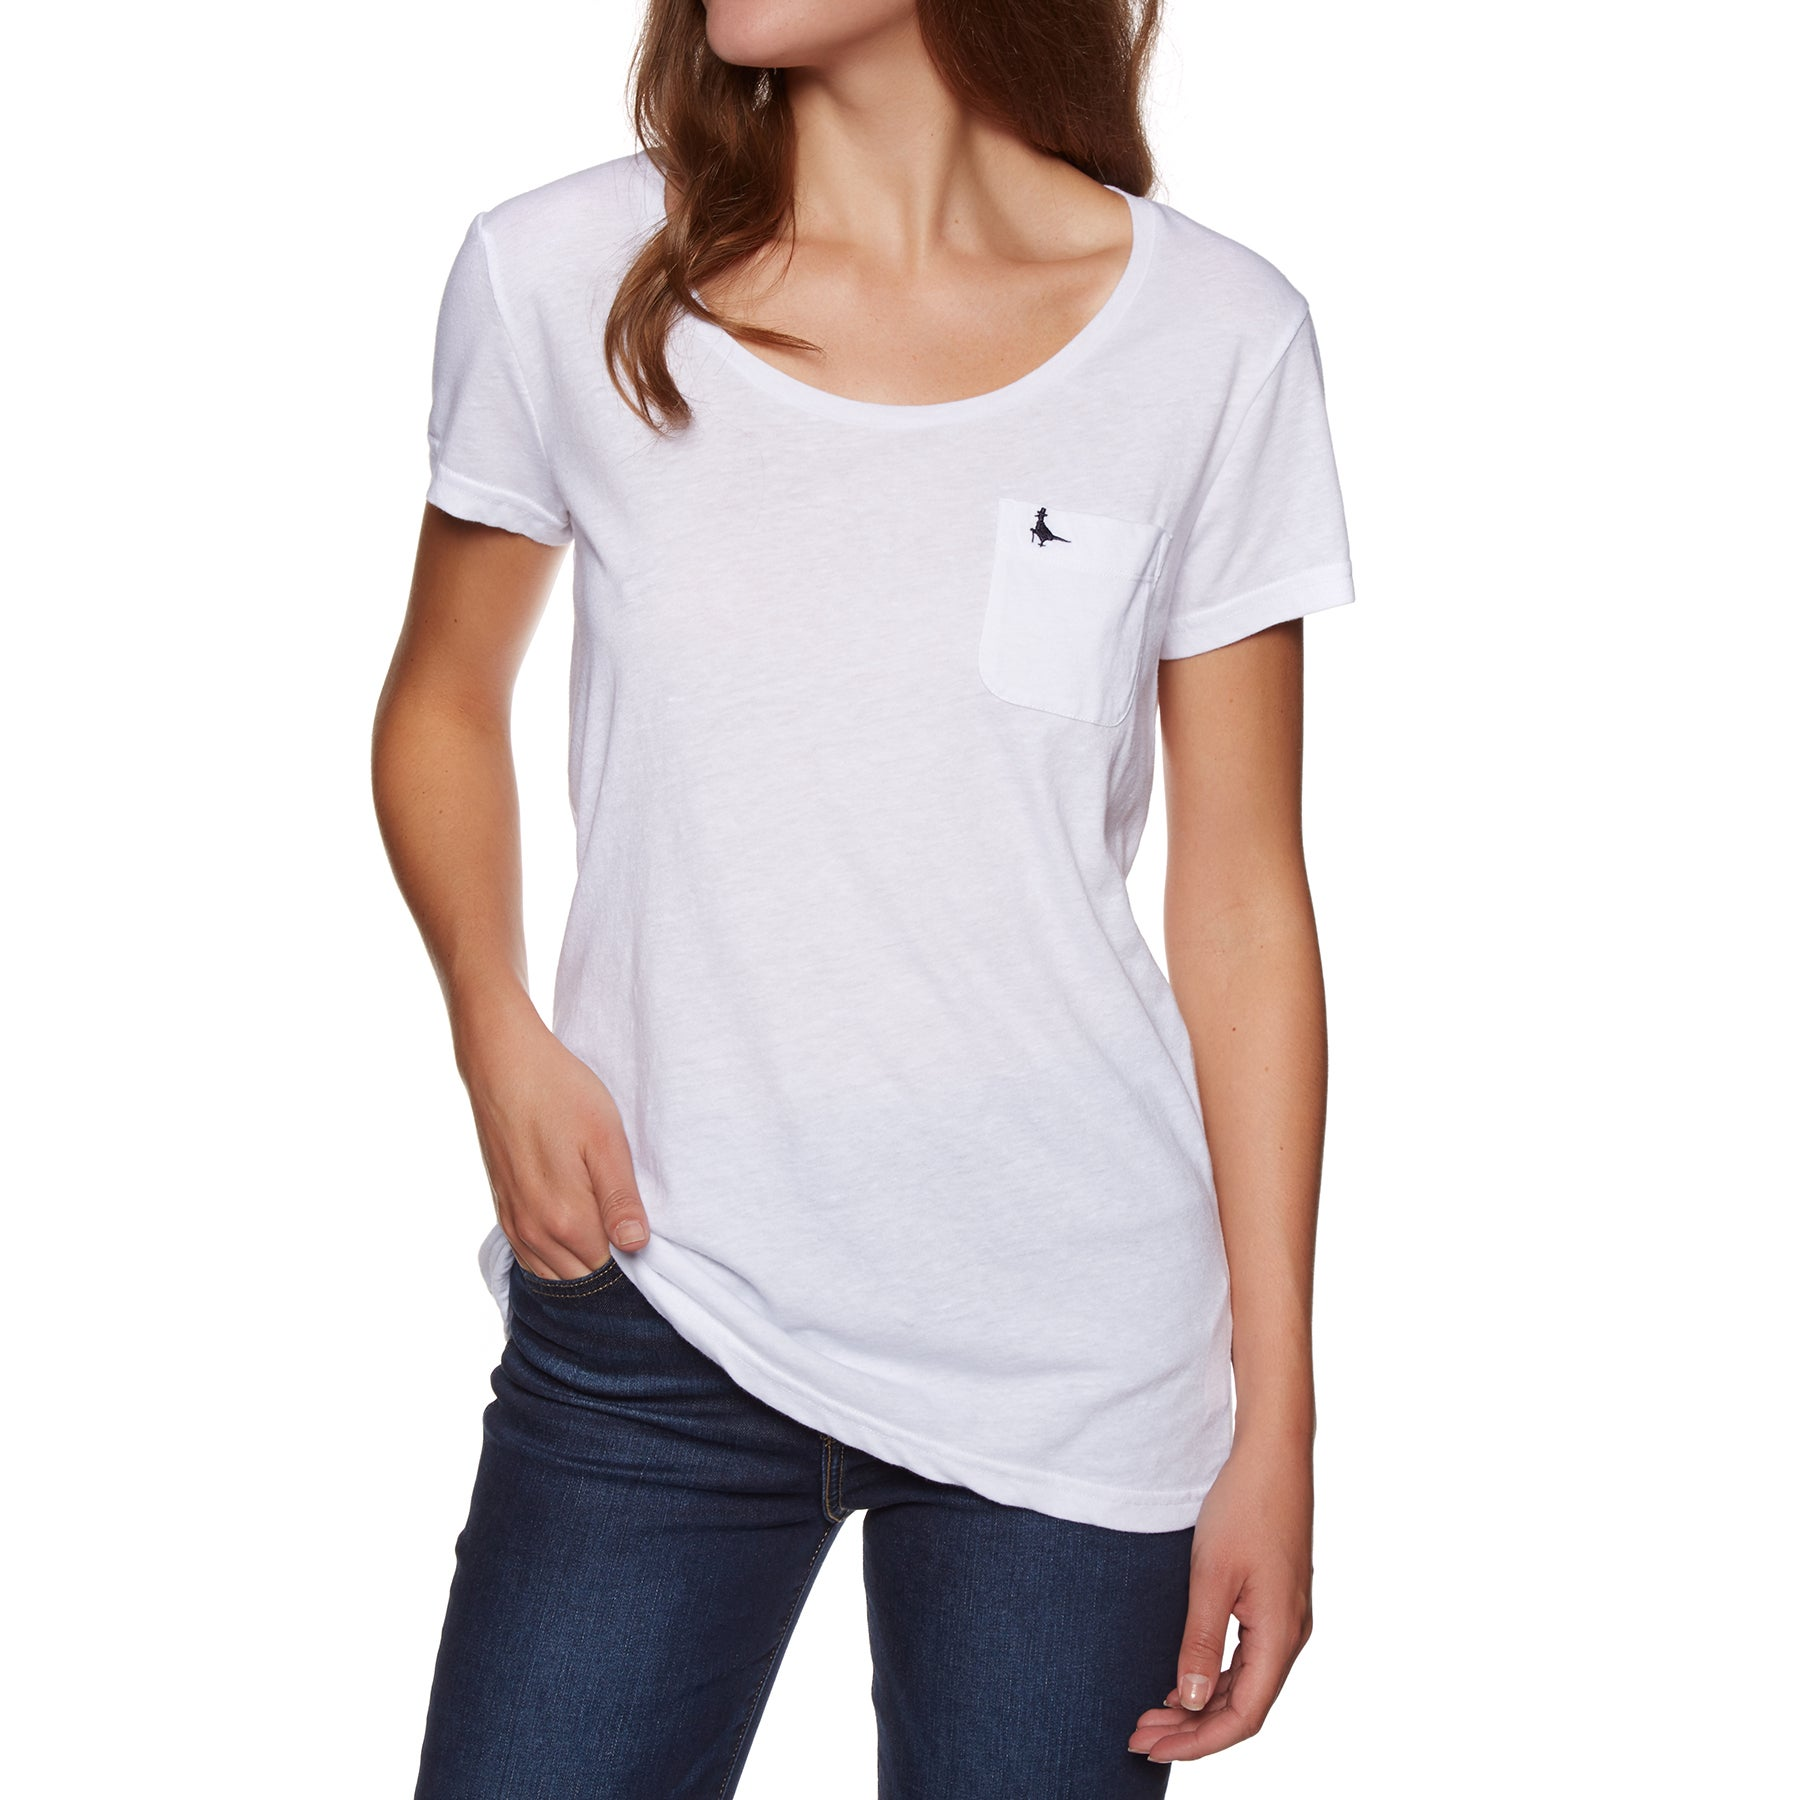 Jack Wills Fullford Classic Pocket Short Sleeve T-Shirt - White